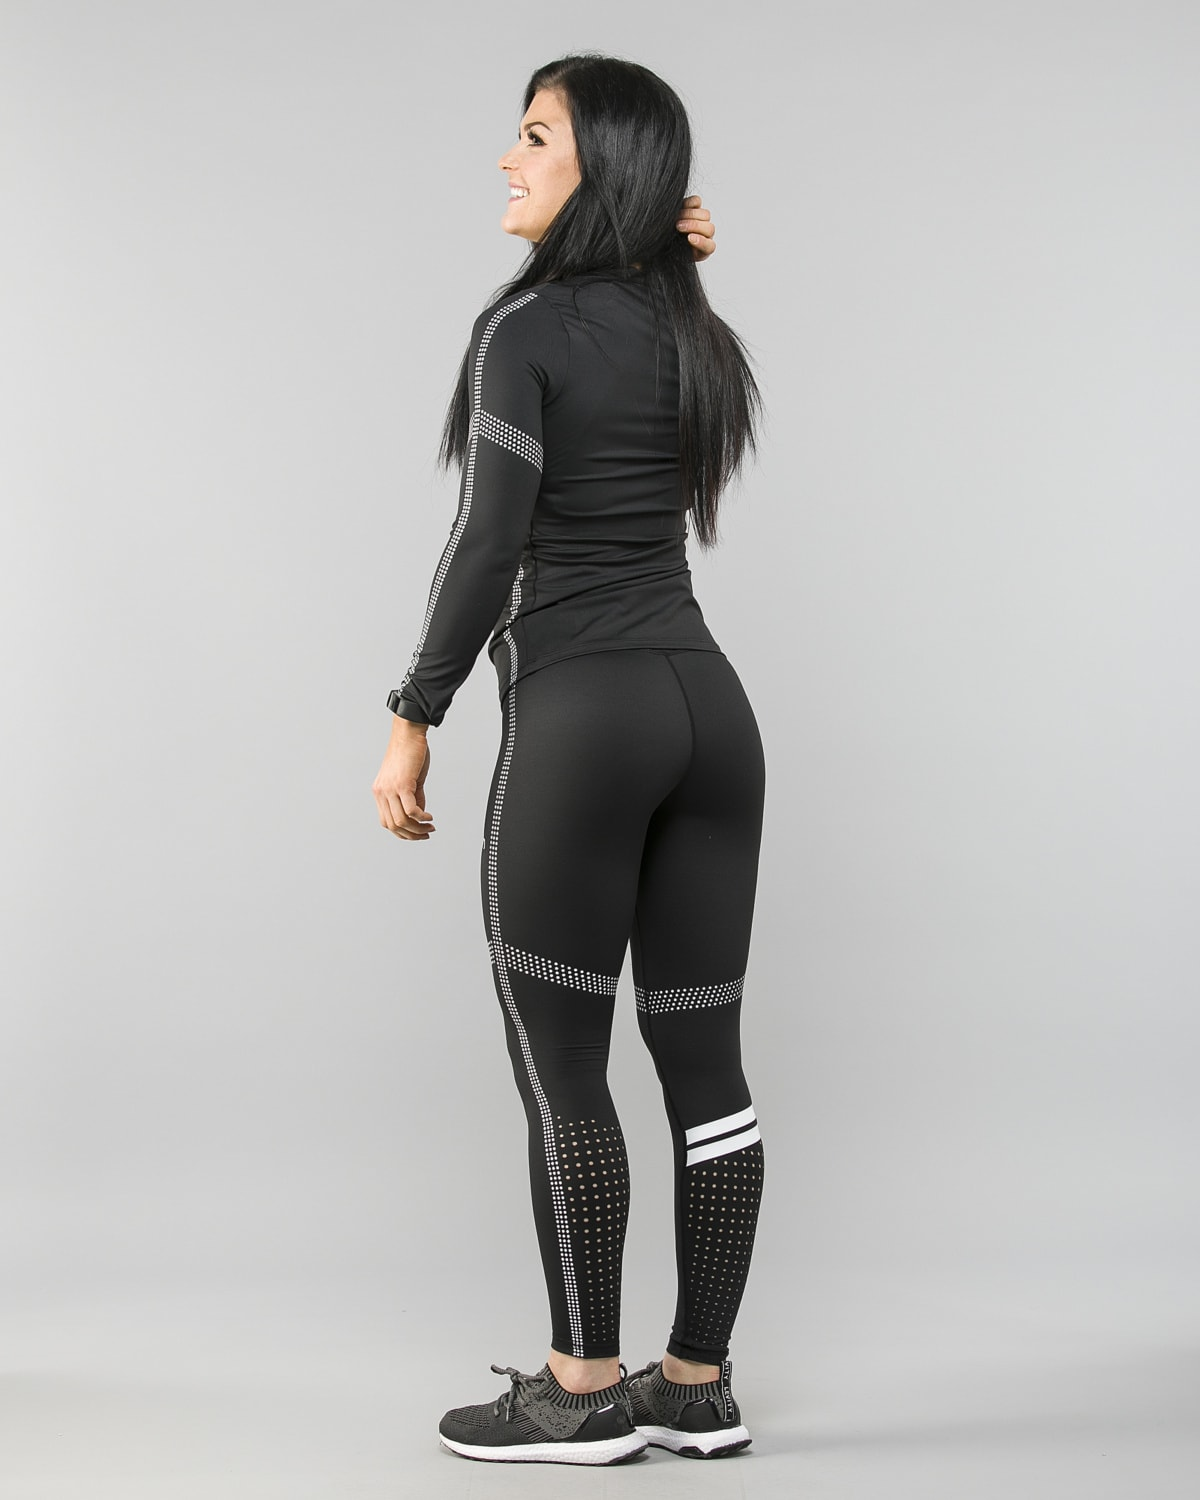 Aim'n Vision Long Sleeve and Tights d